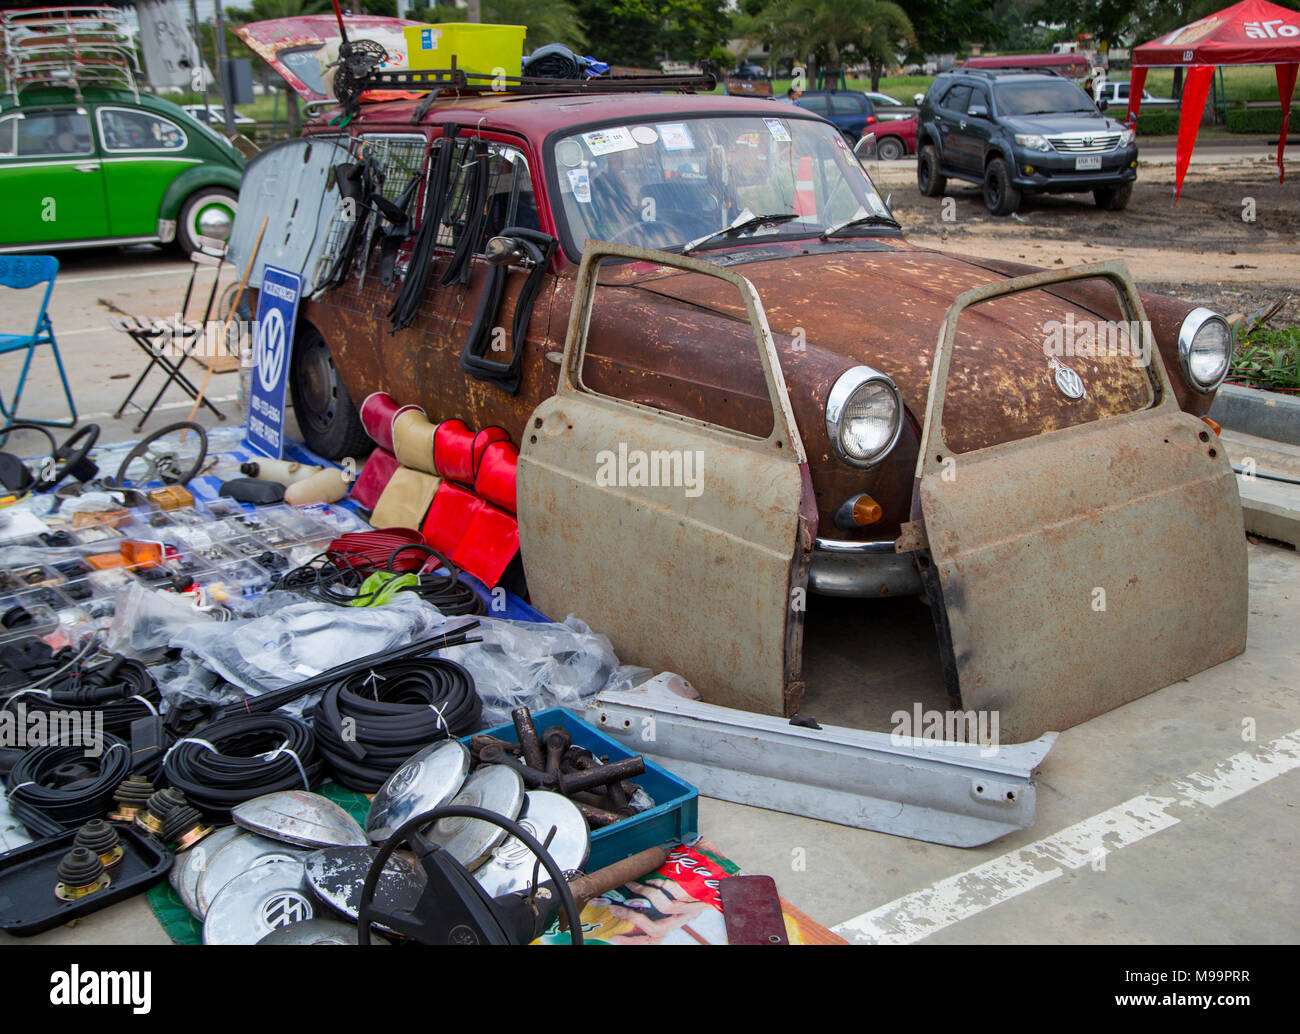 Spare Parts Sale Vintage Car Stock Photos & Spare Parts Sale Vintage ...